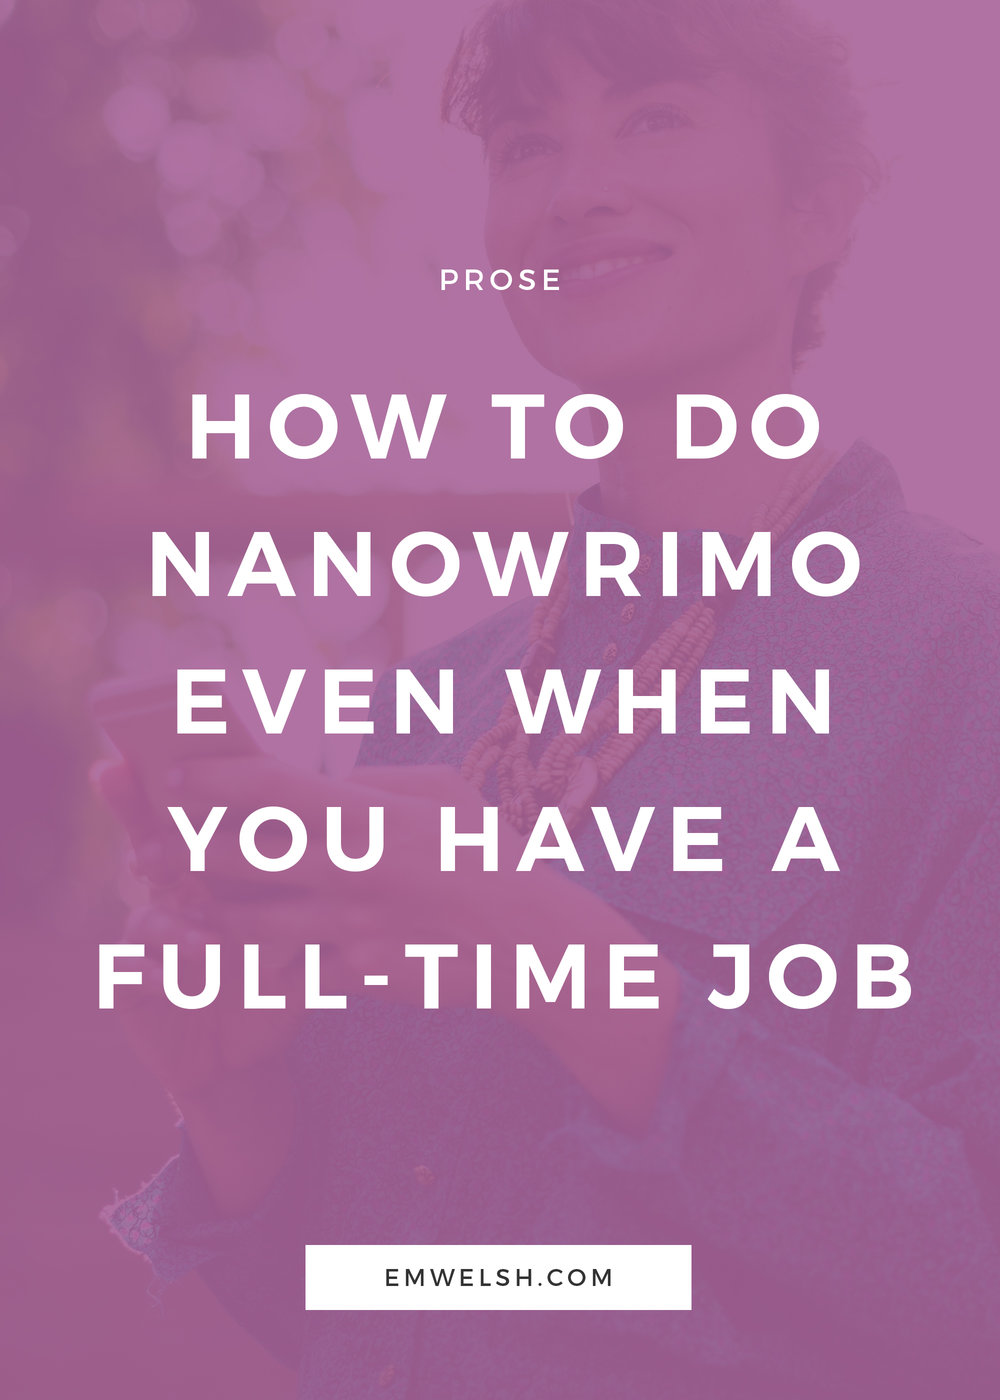 nanowrimo-full-time-job.jpg